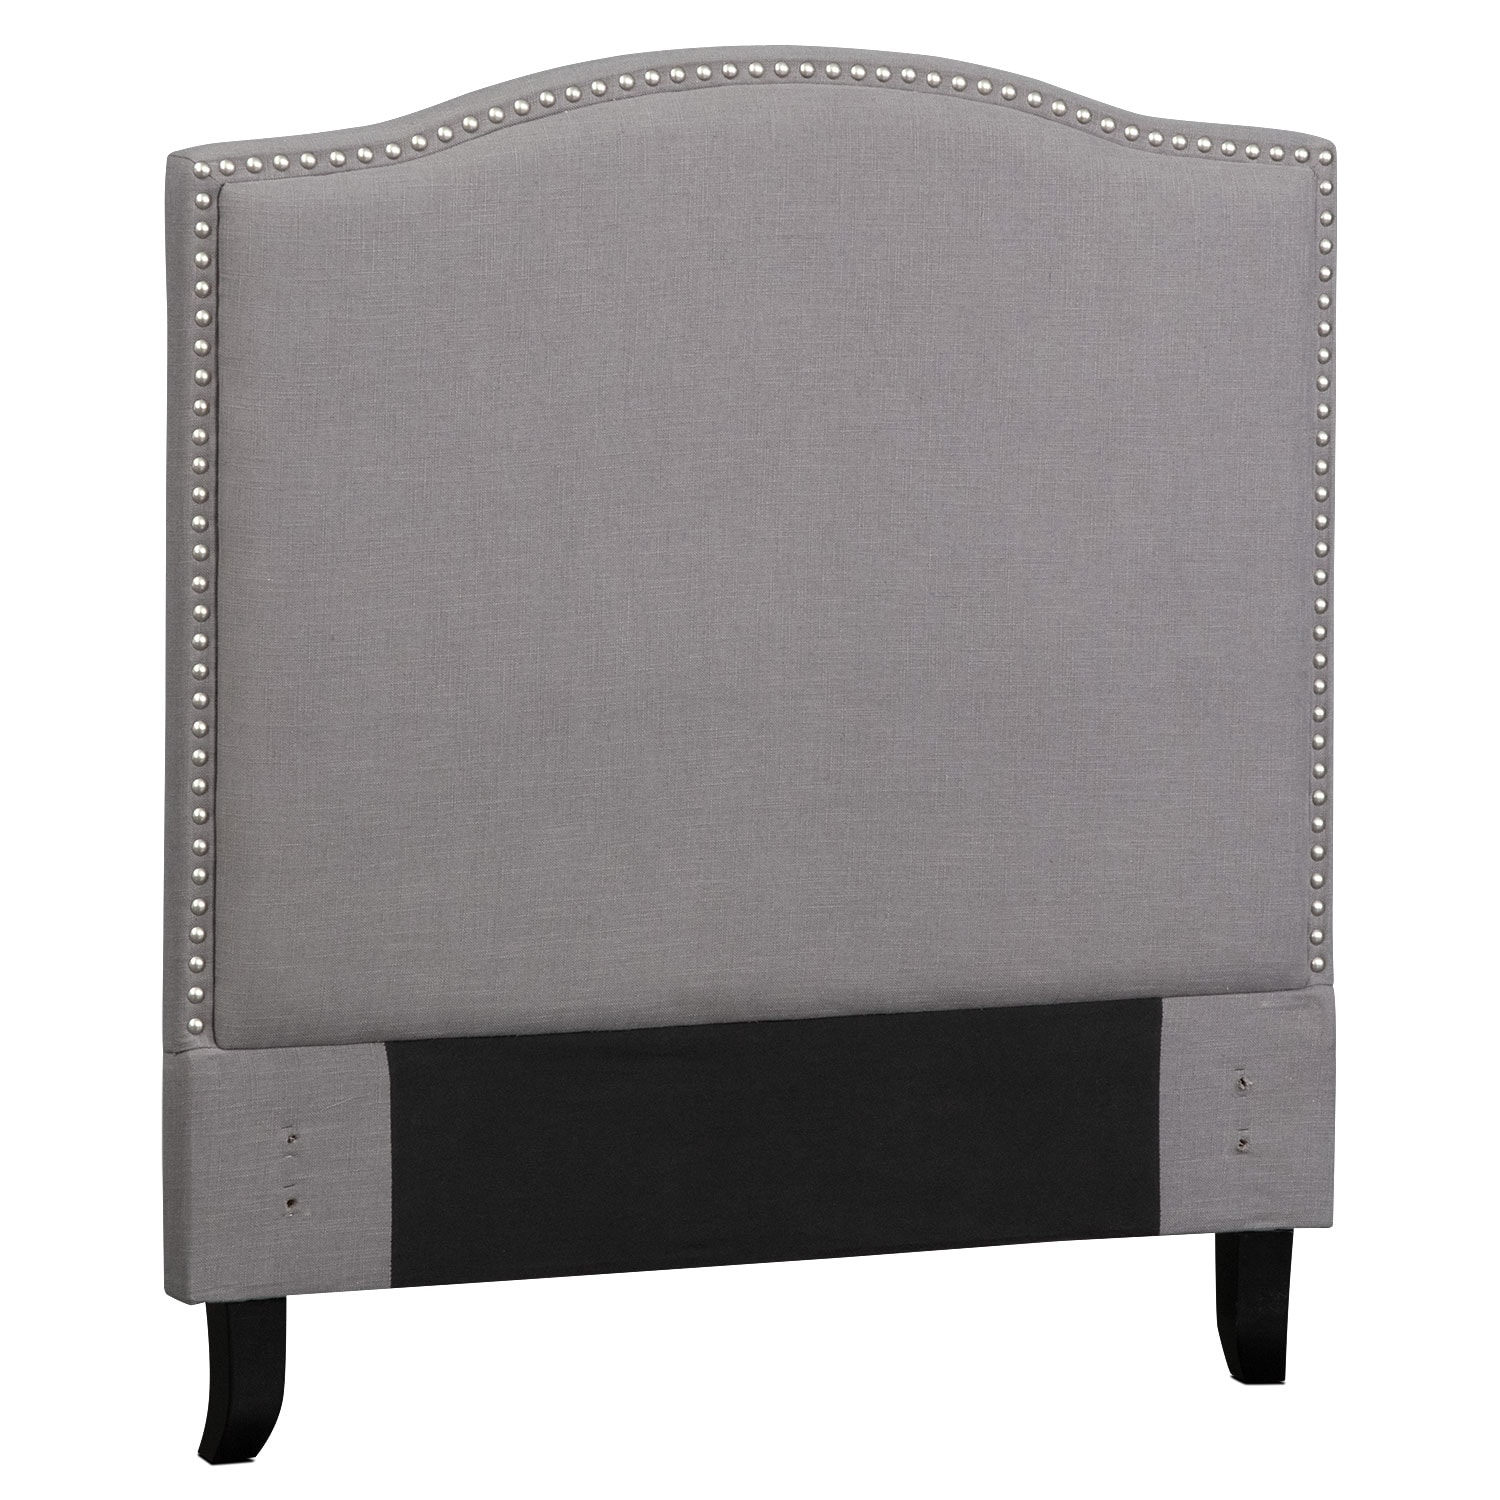 Bedroom Furniture - Aubrey Twin Upholstered Headboard - Gray